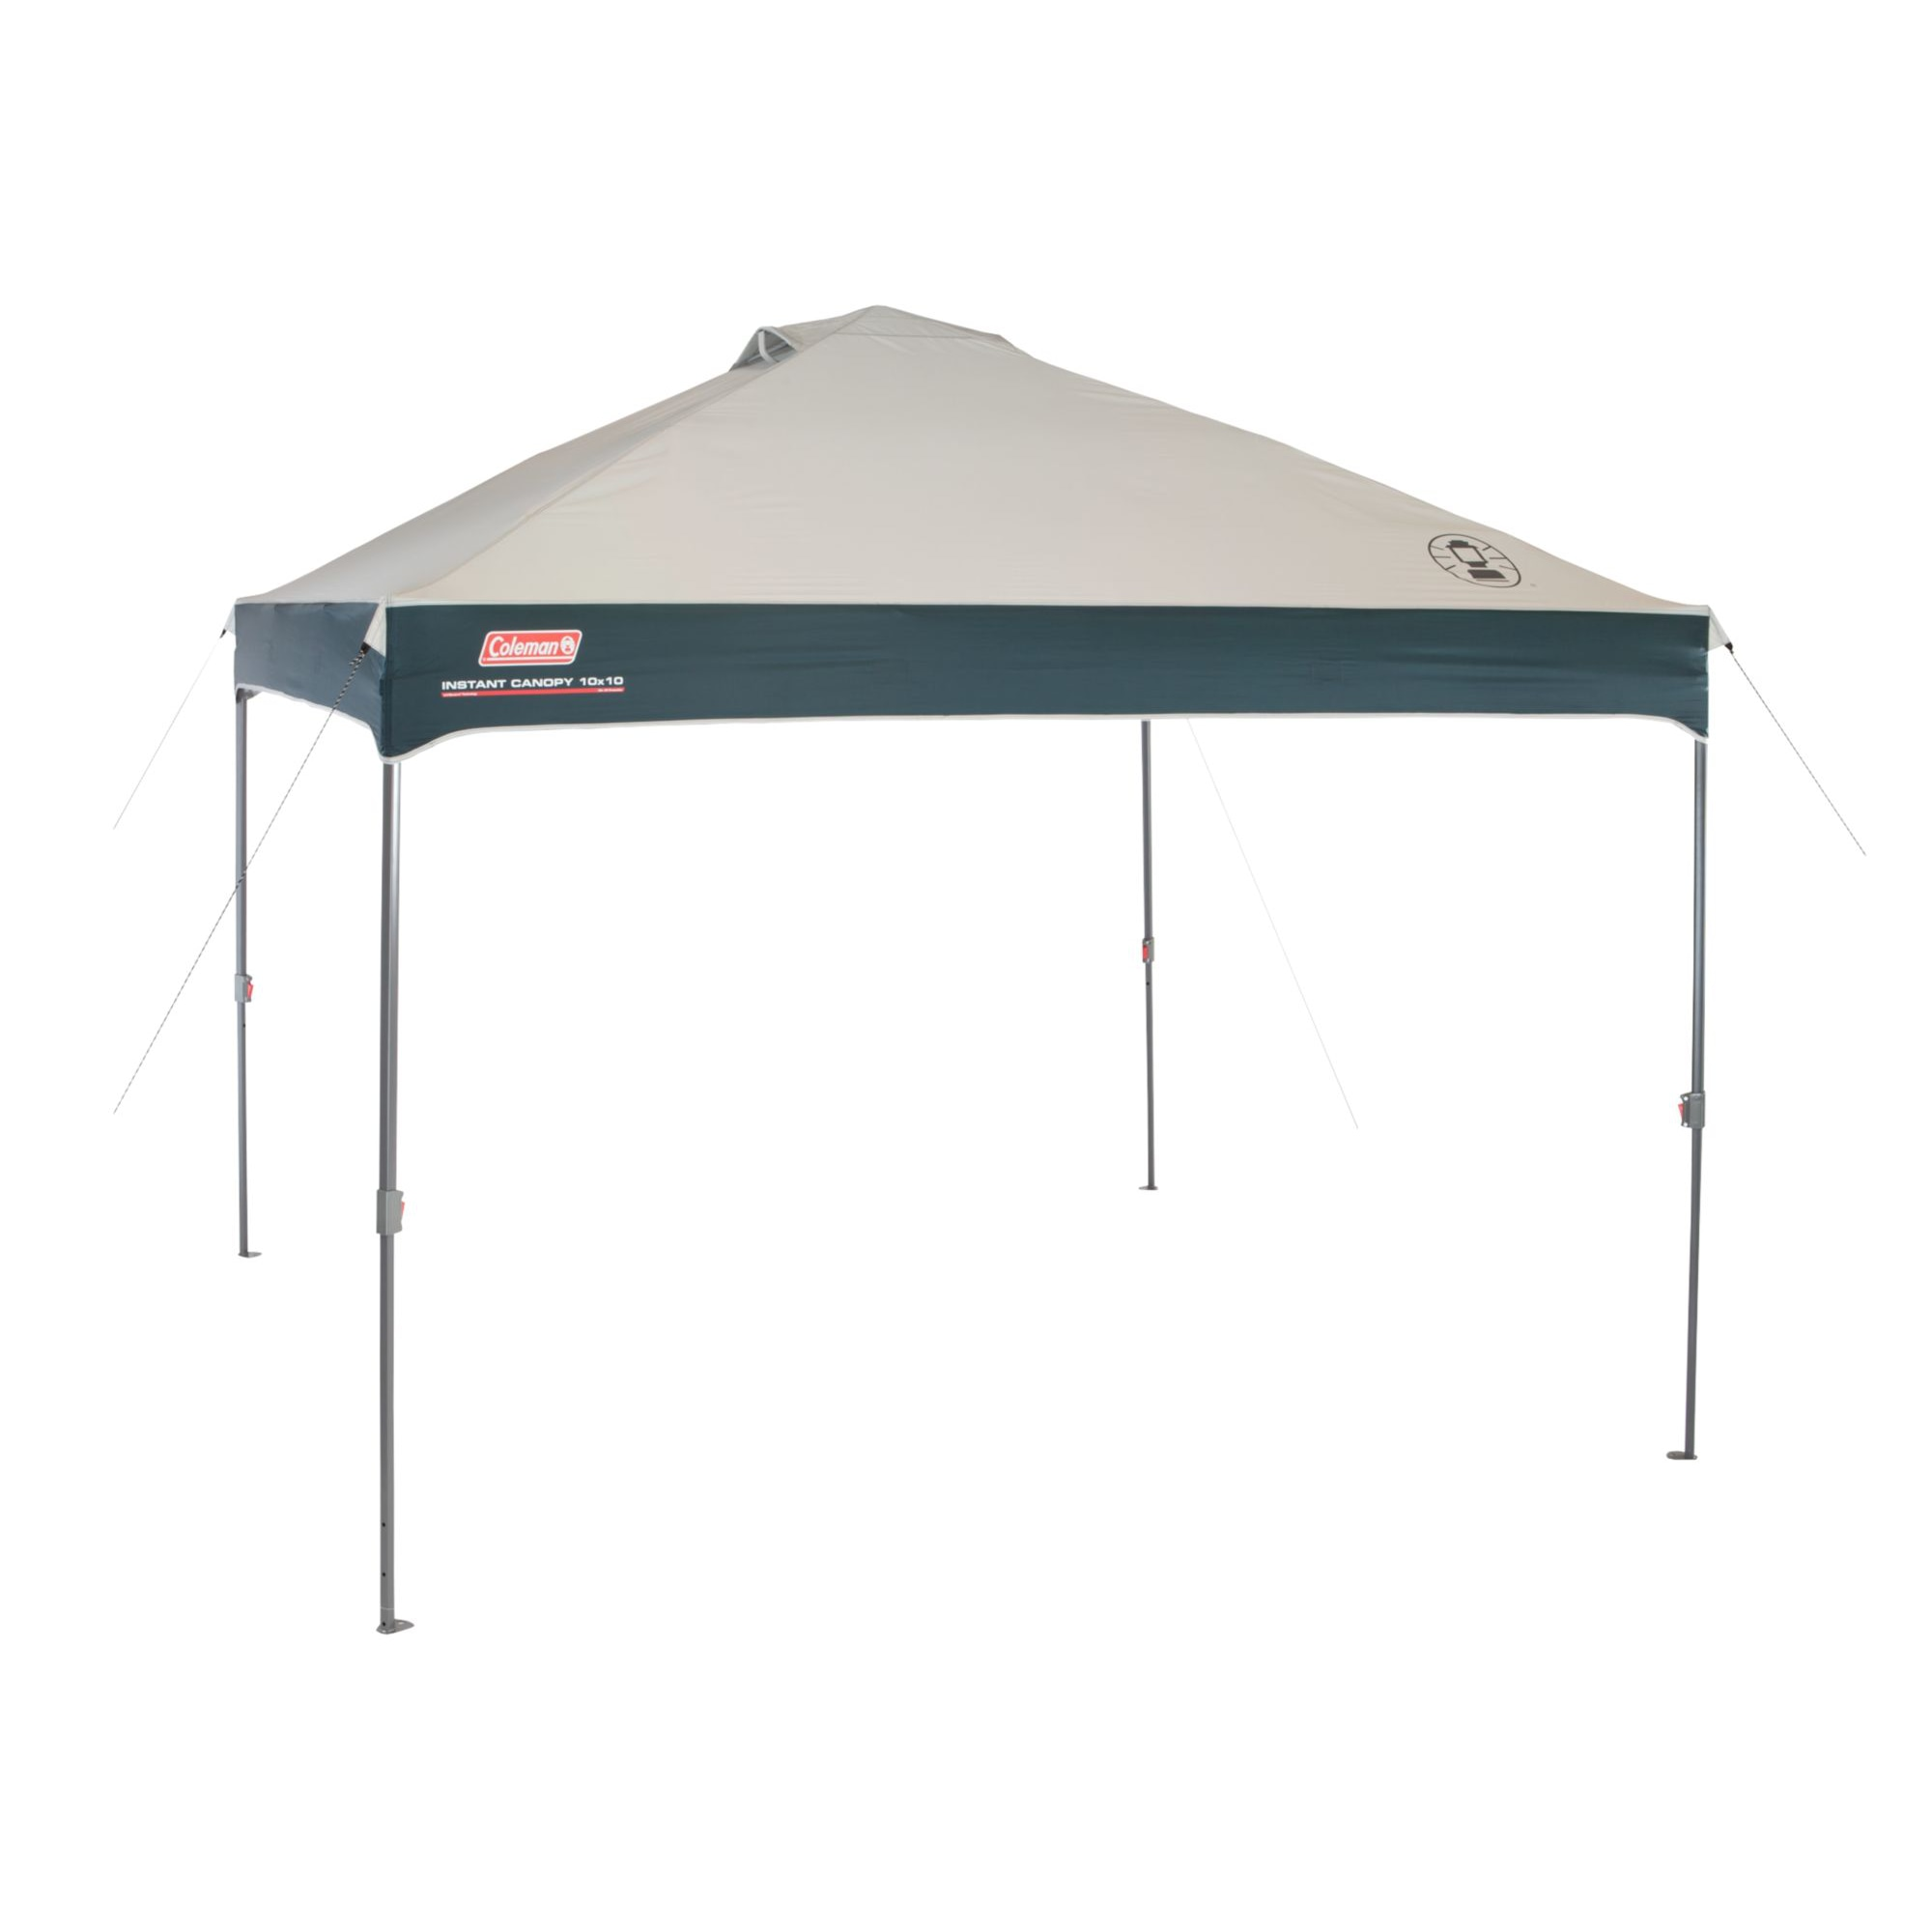 10 X 10 CANOPY SHELTER